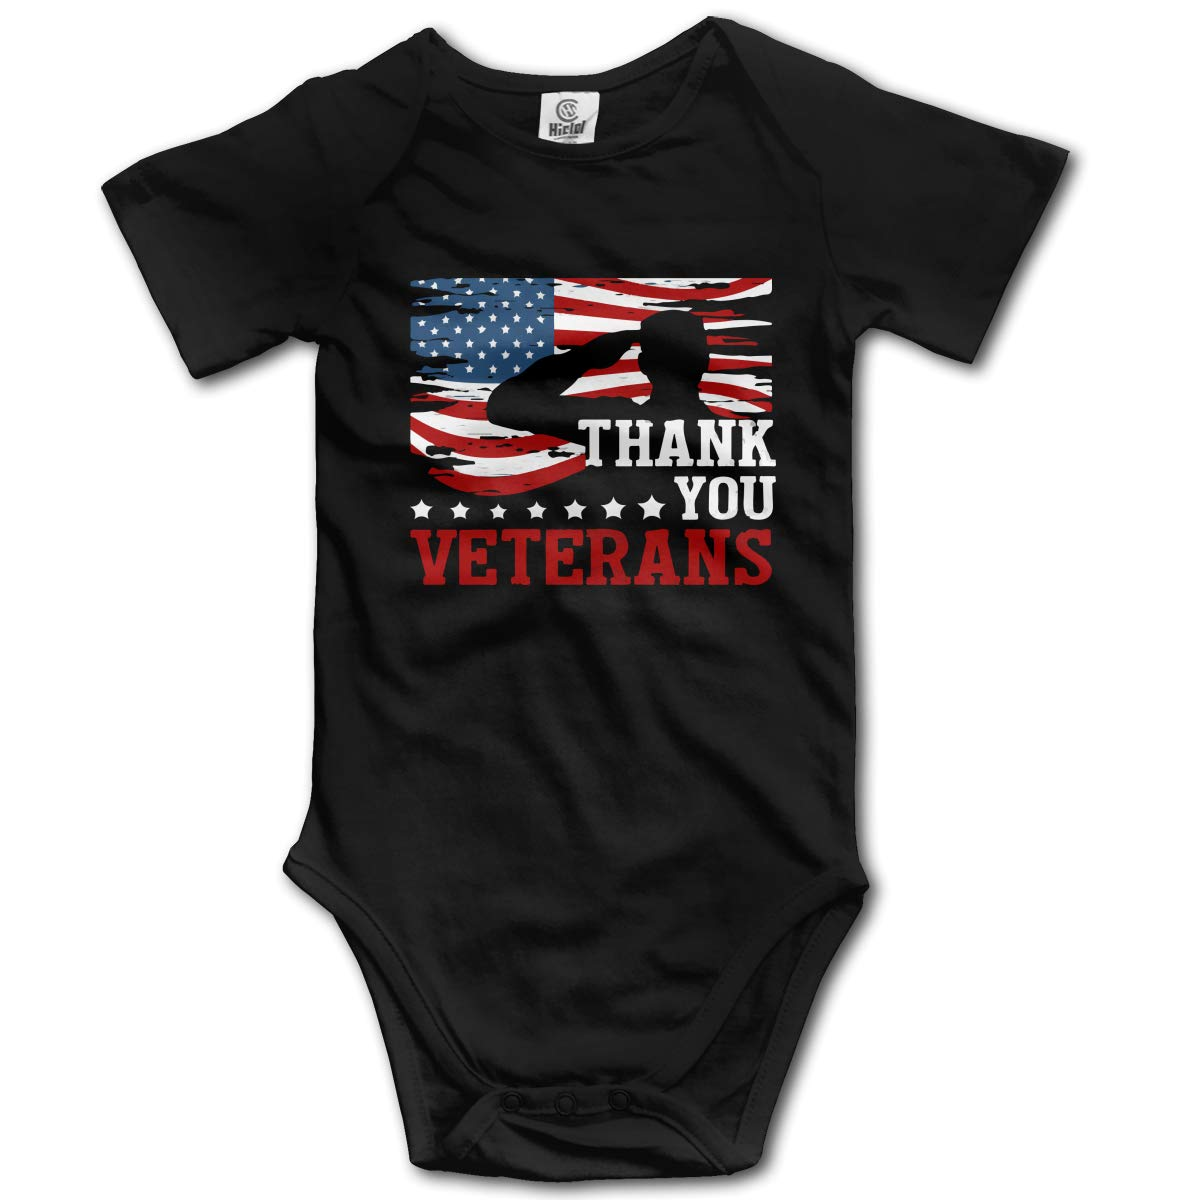 Baby Girls Soldiers Veterans USA Flag Short Sleeve Climbing Clothes Playsuit Suit 6-24 Months